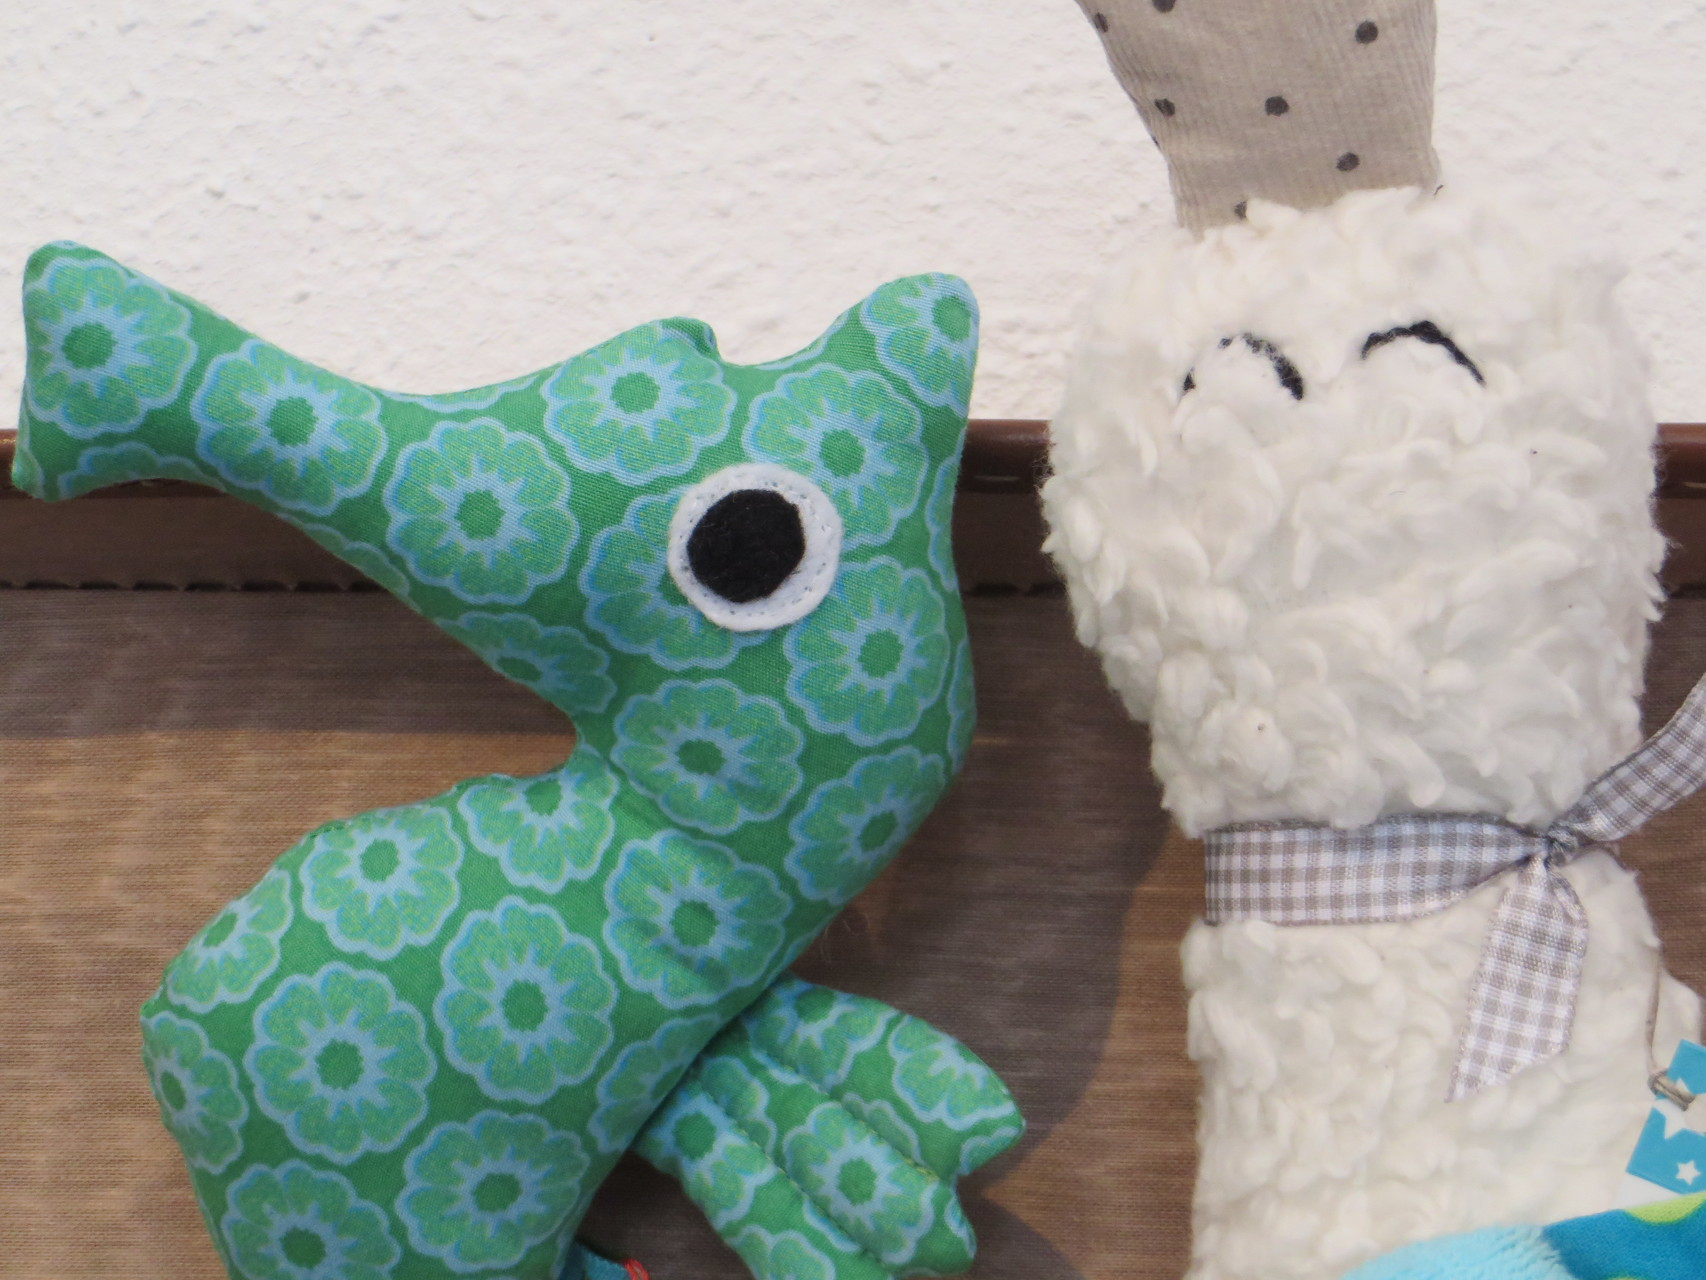 Hand Made Rattle - Schmuckzauber - Seahorse - 39,- / Duck - 49,- Kids Design